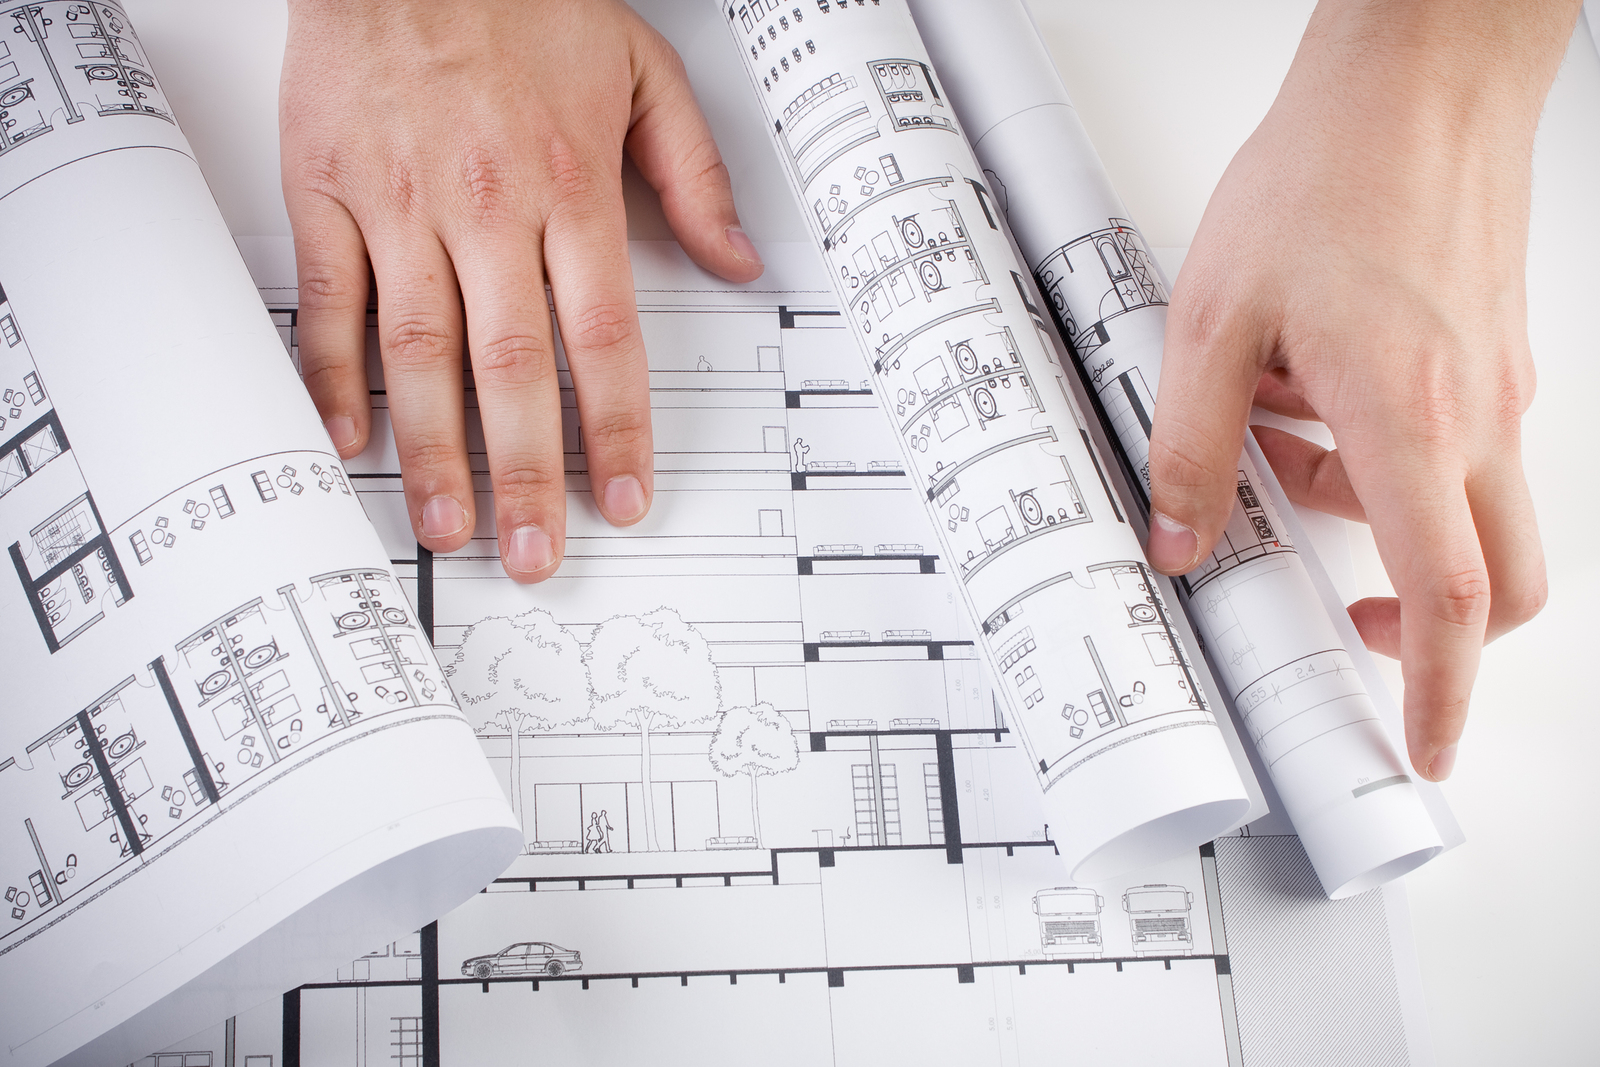 How To Read Plans And Blueprints Pro Construction Guide